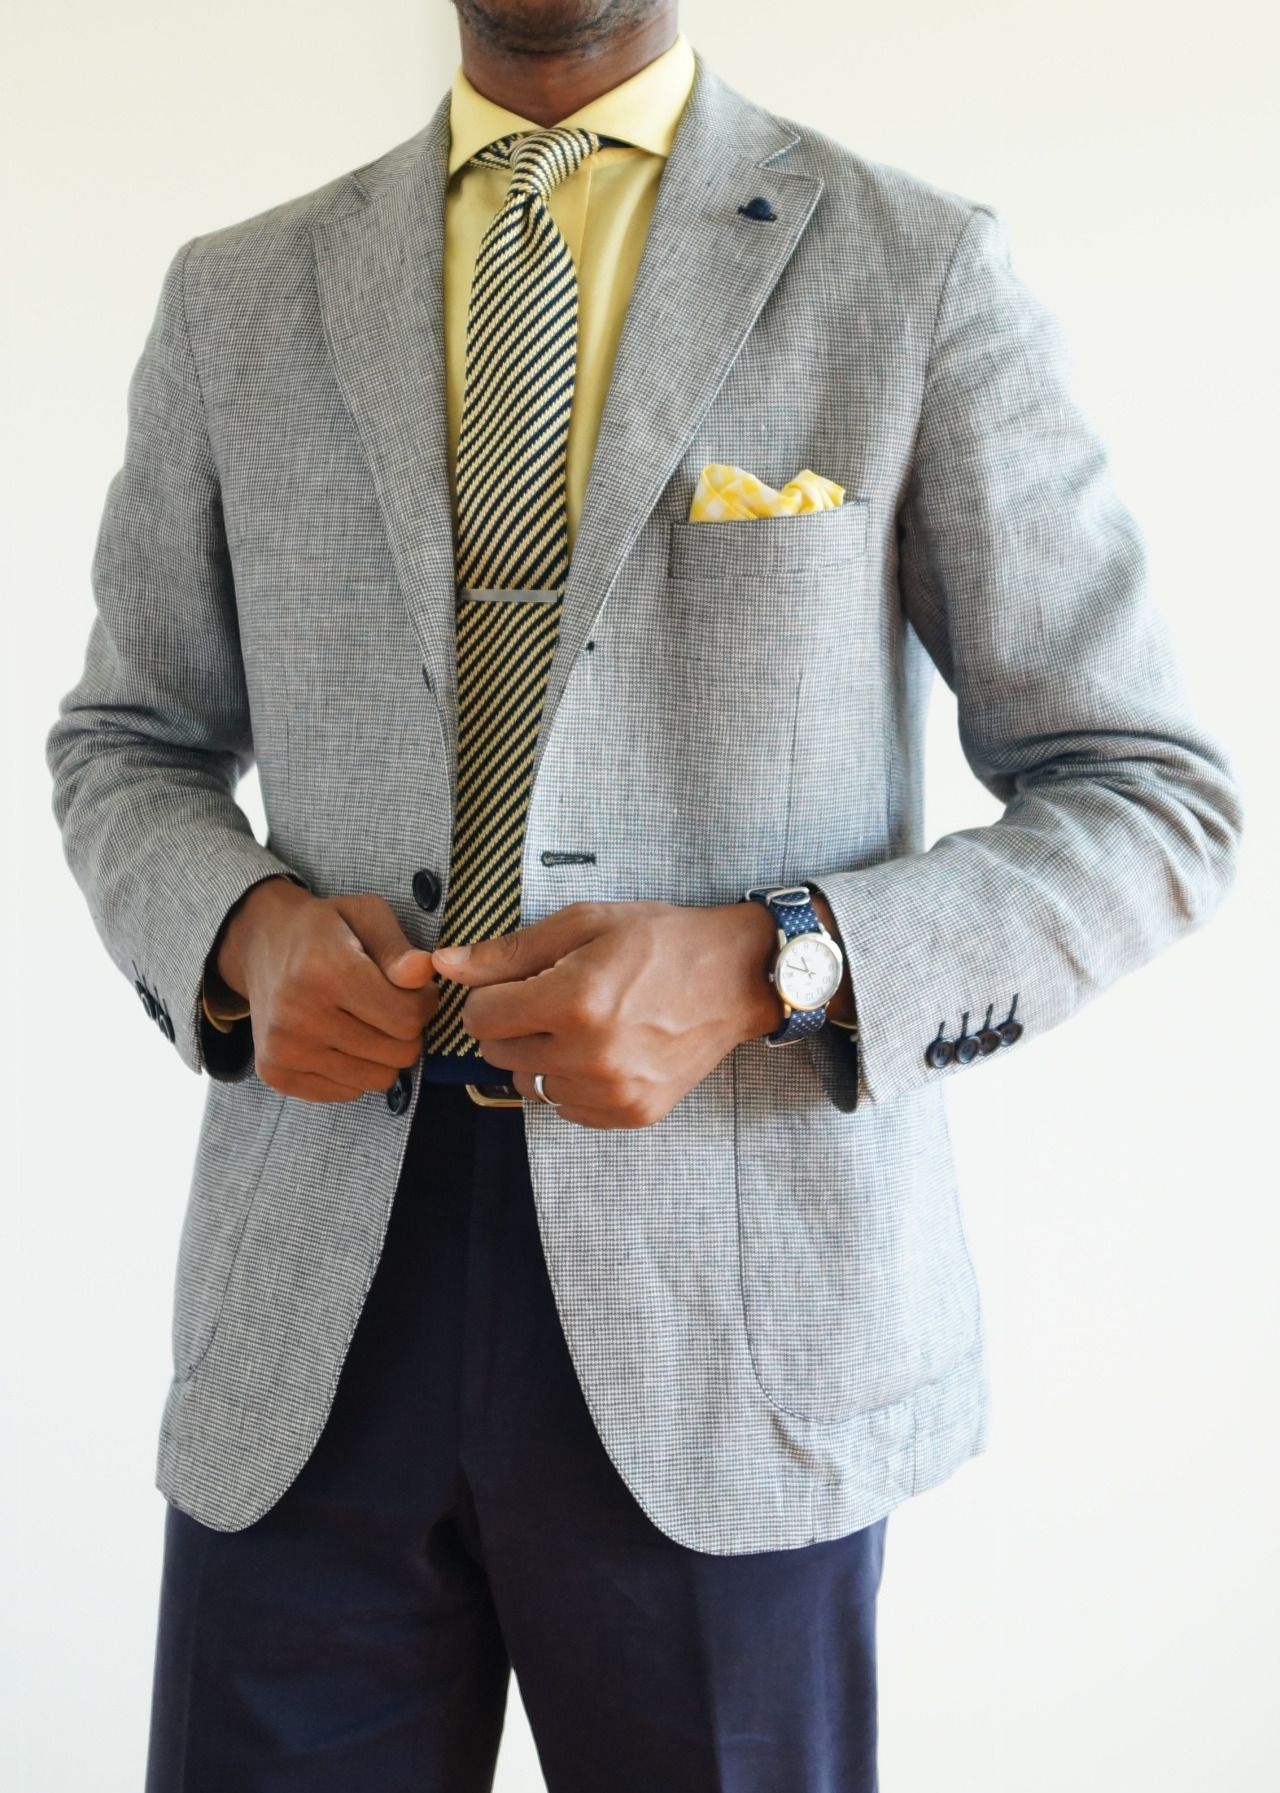 Men's Fashion | Menswear | Men's Outfit for Spring/Summer ...